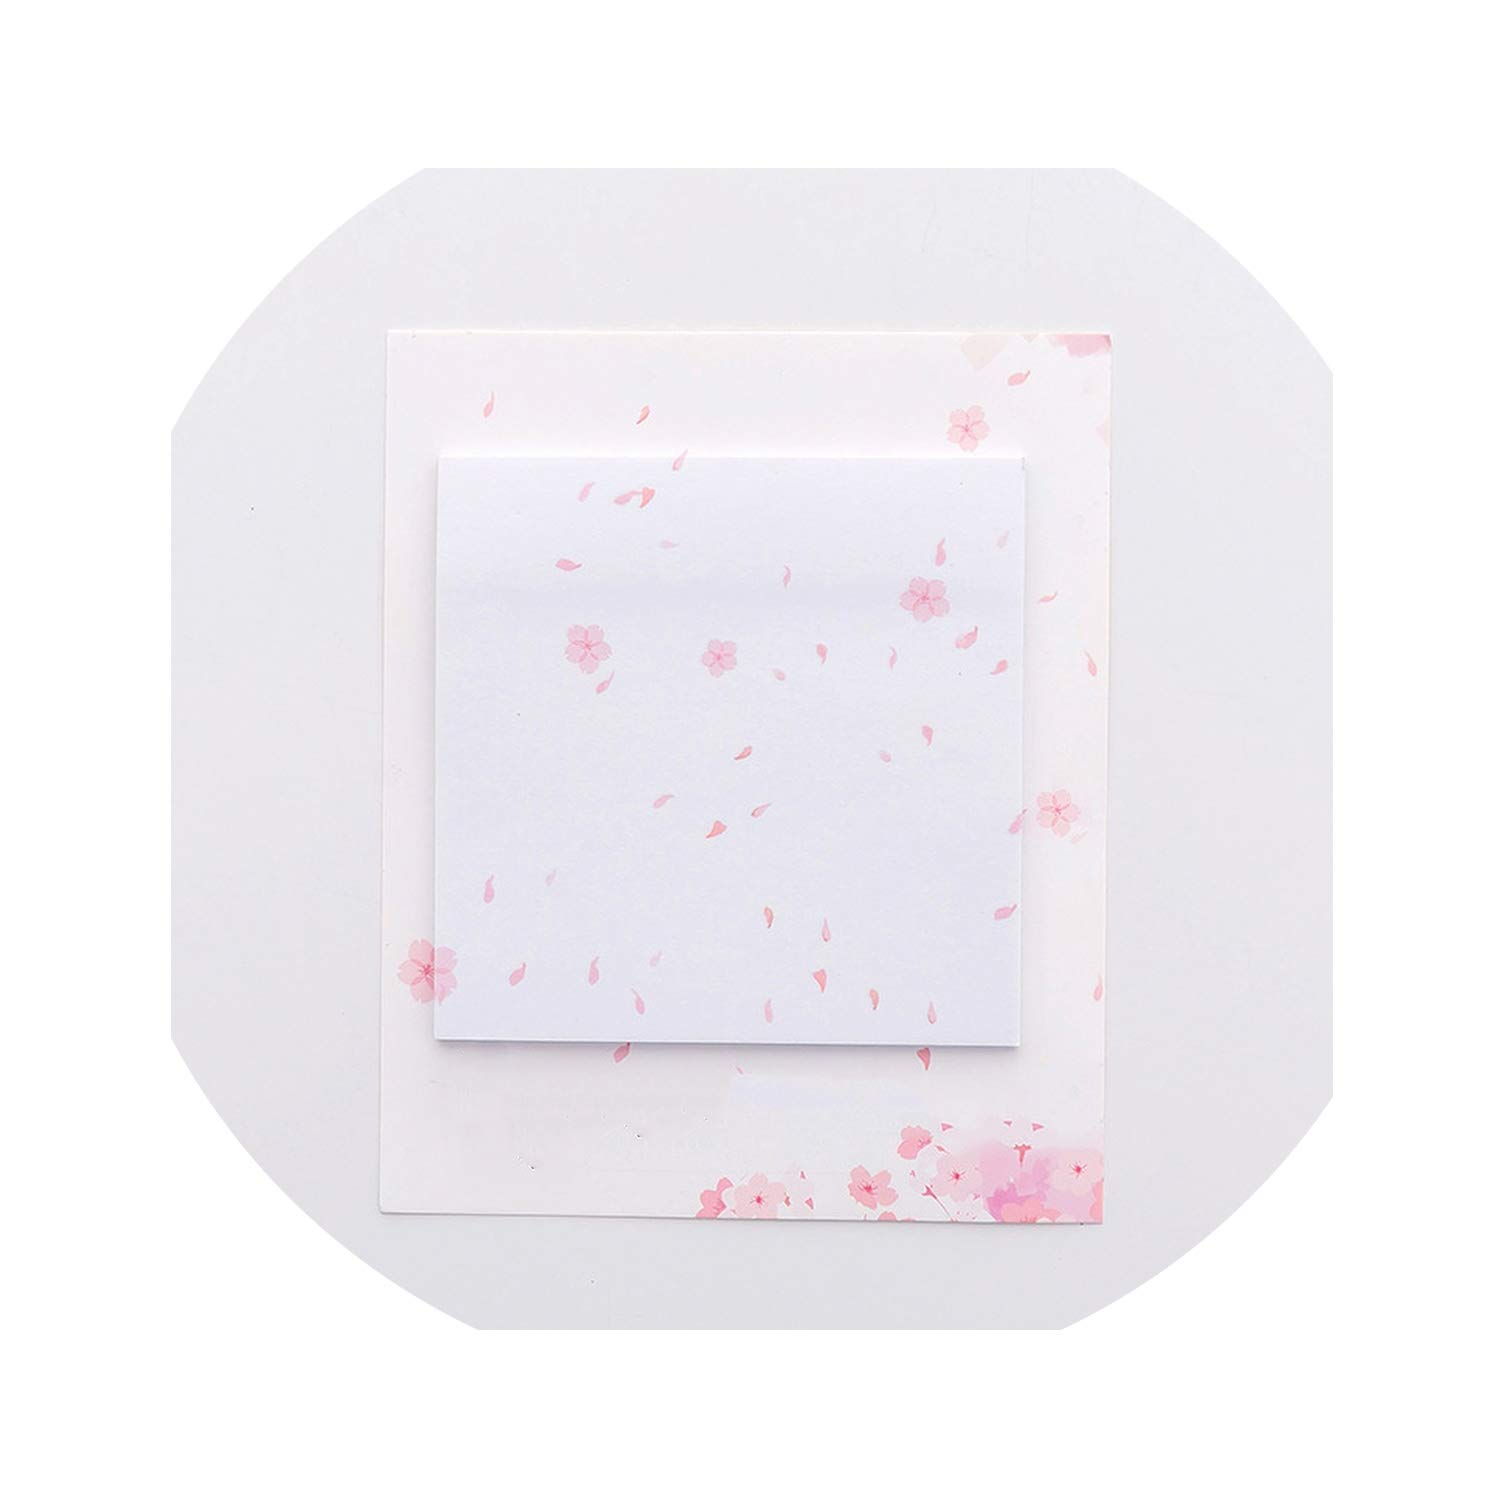 Marble Post Notes Office Supplies Desk Supplies Sticky Notes Memo Pad